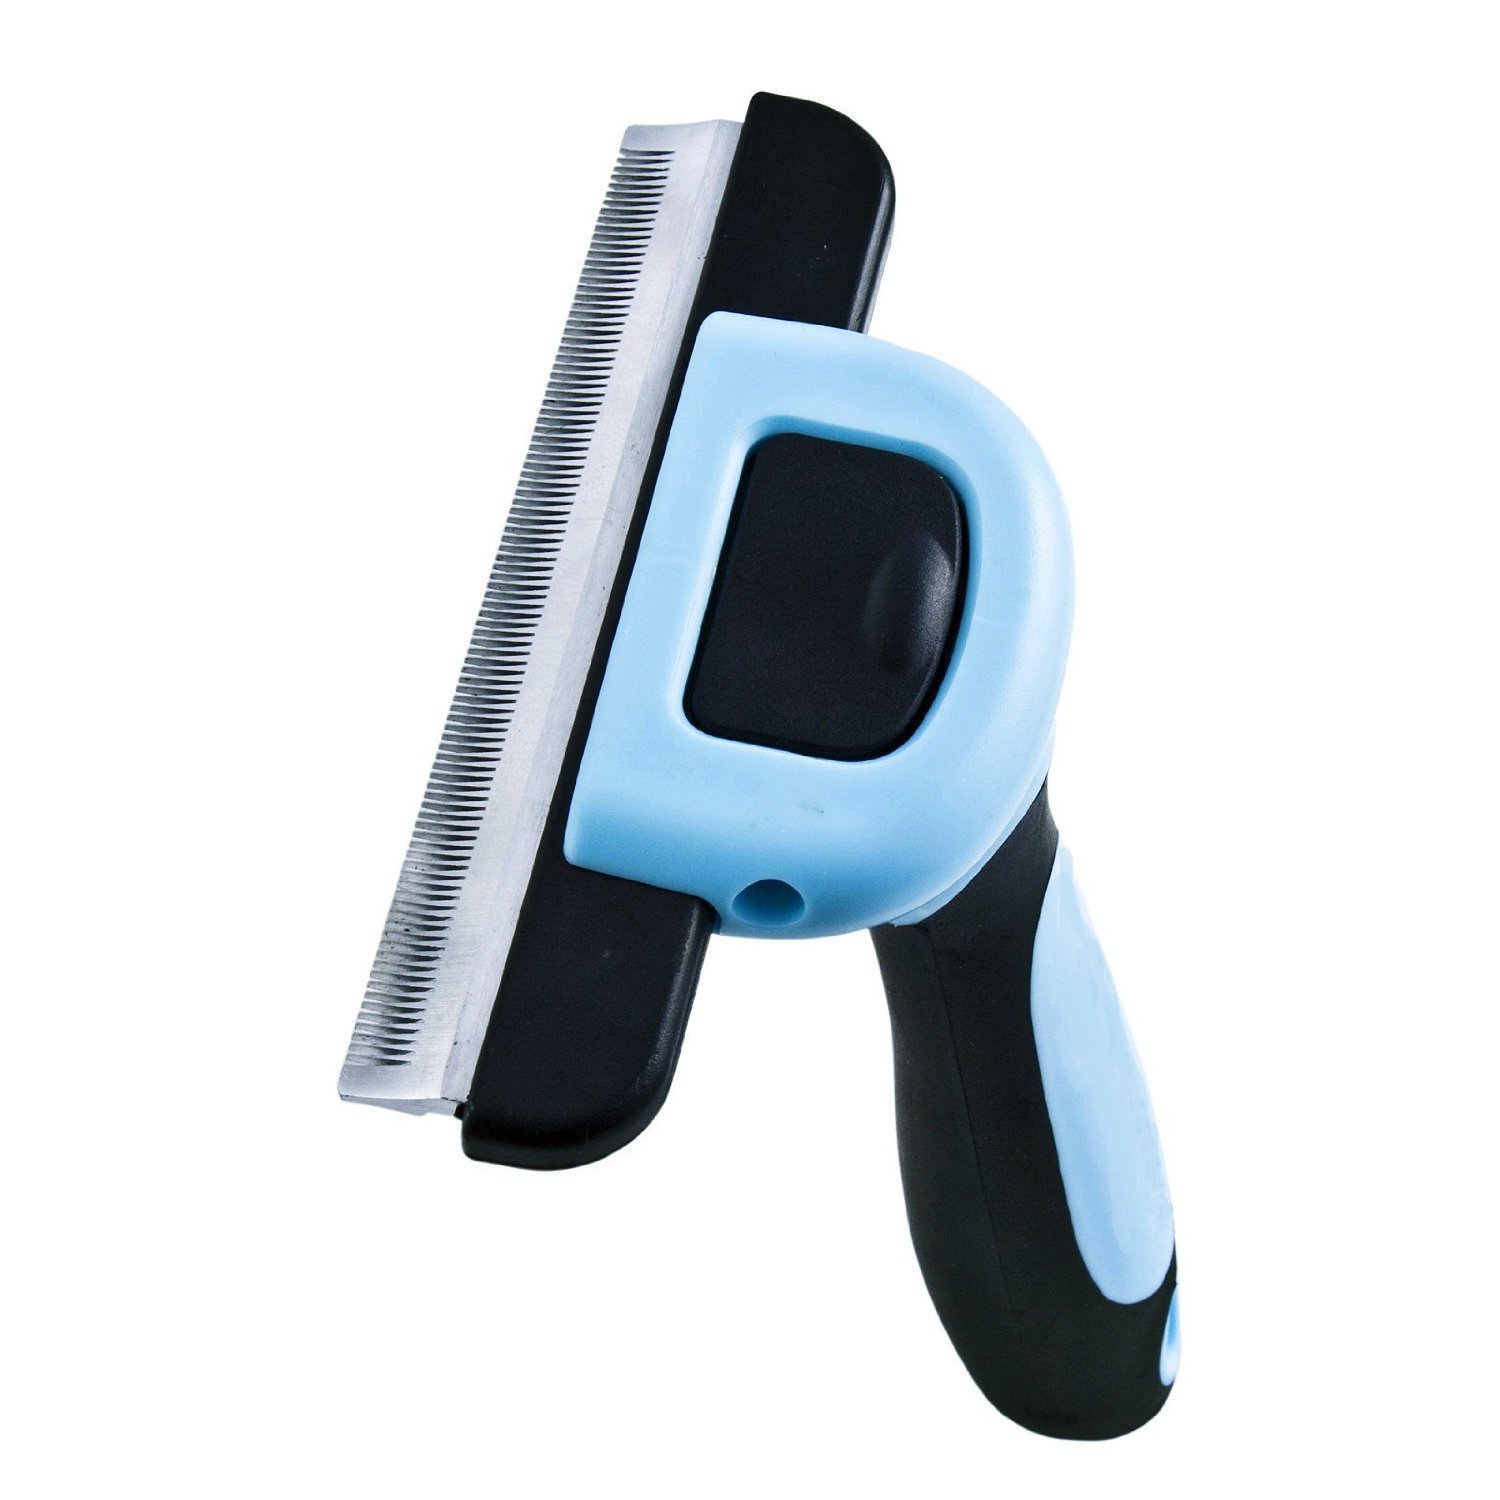 Deshedding Tool & Pet Grooming Tool for Small, Medium & Large Dogs & Cats, With Short to Long Hair. Dramatically Reduces Shedding in Minutes Guaranteed! DELE Q007